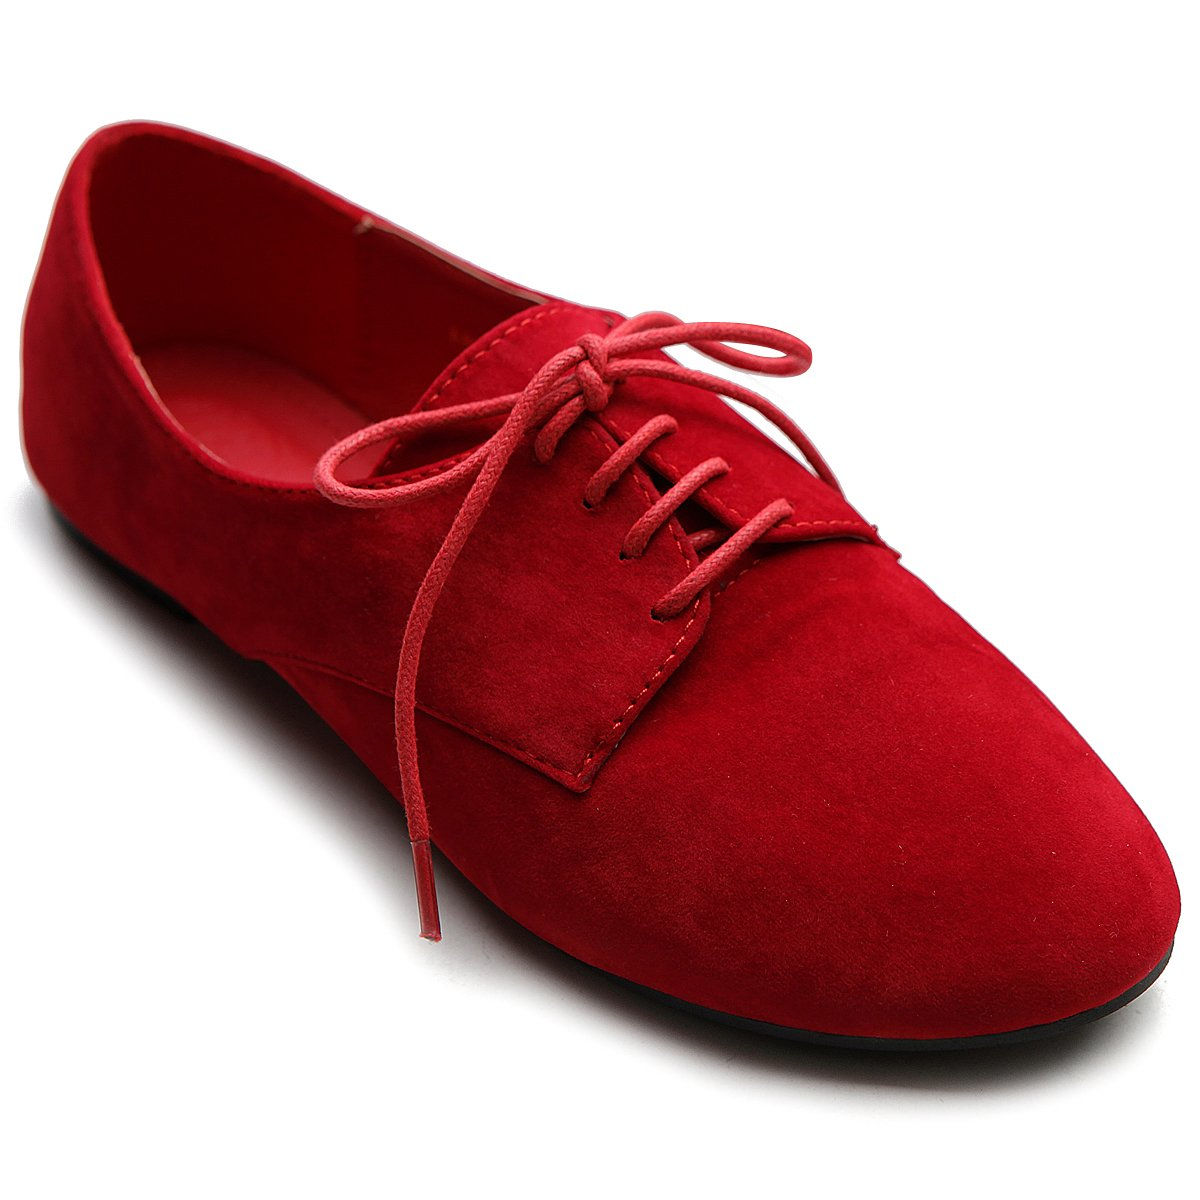 Ollio Women's Ballet Flat Shoe Faux Suede Lace up Oxford ZM1984(6.5 B(M) US, Red)